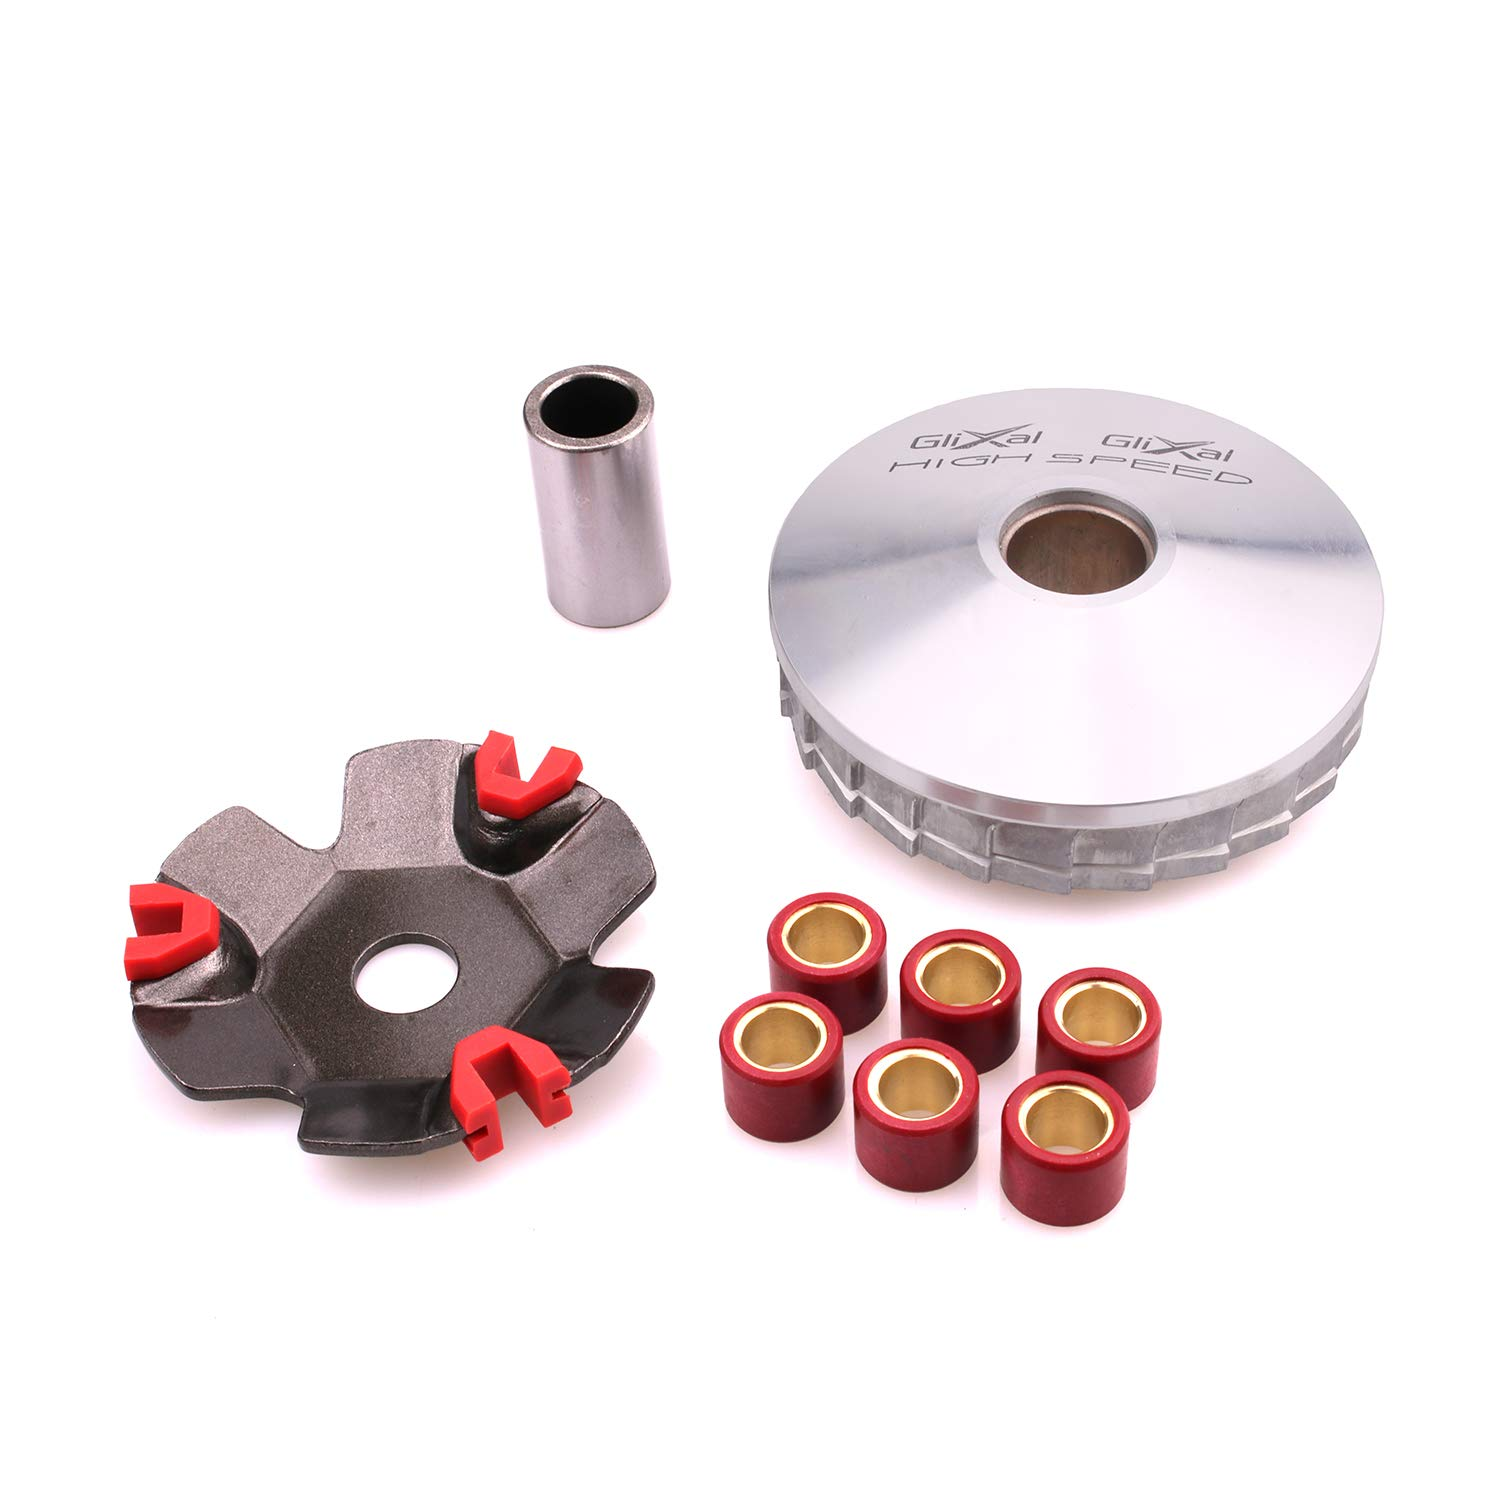 Glixal ATKS-041 High Performance Racing Variator Kit with 6 5 gram Roller  Weights for Chinese Scooter Moped ATV 4-Stroke GY6 50cc 80cc 100cc 139QMB